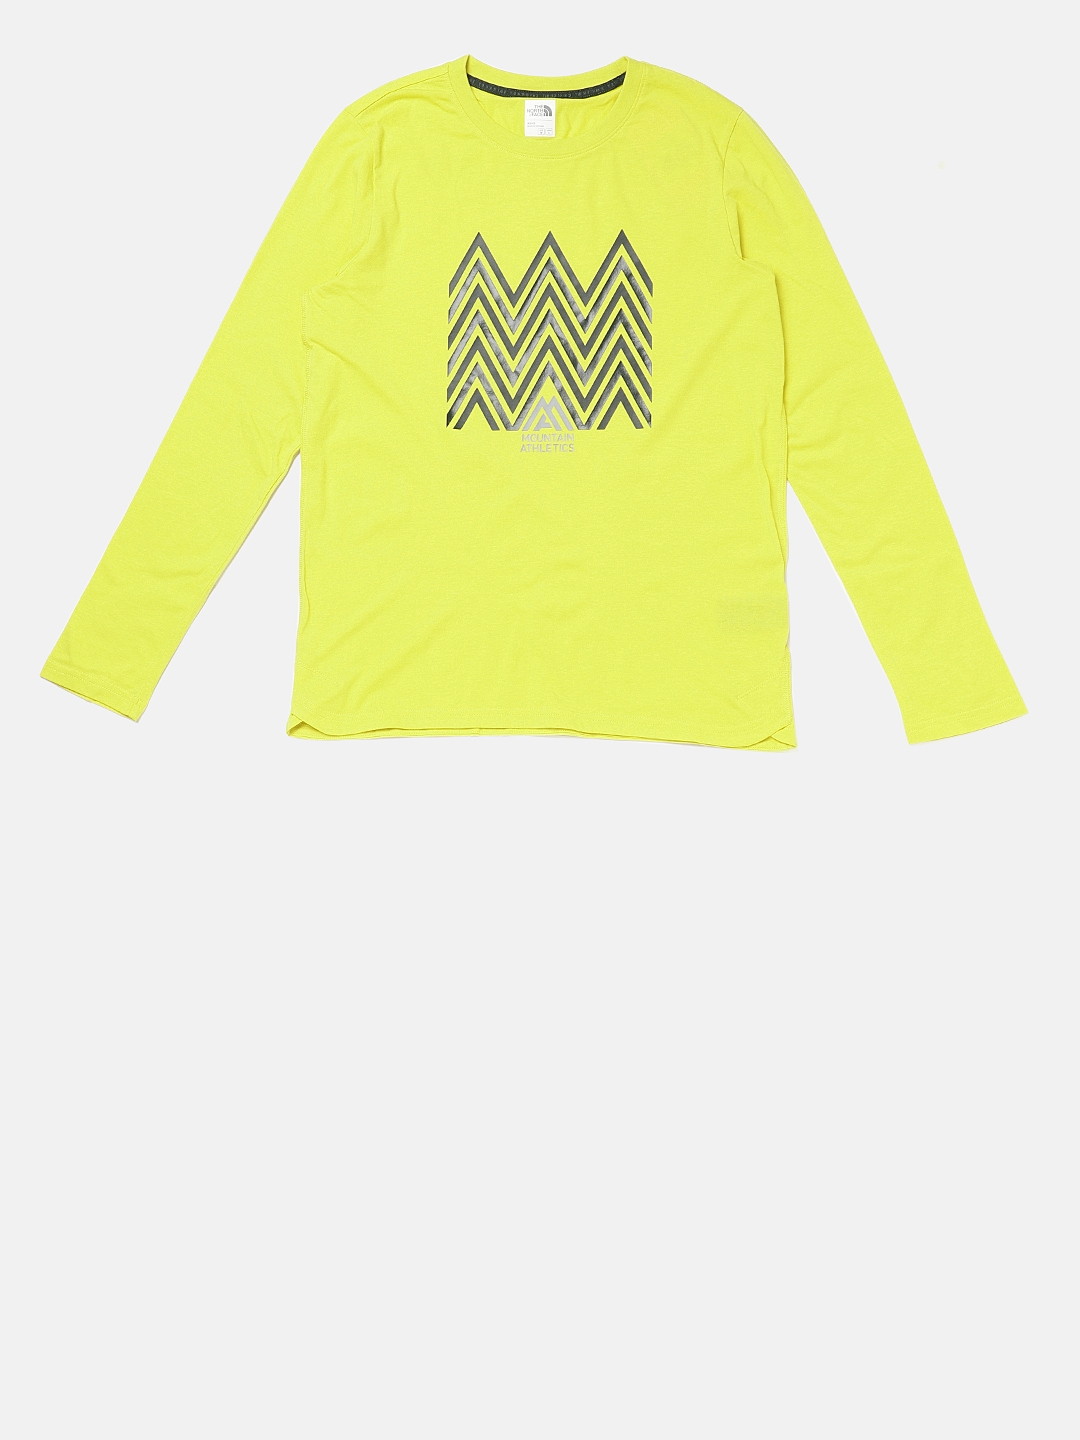 5dd46011f Buy The North Face Men Yellow Printed Yellow T Shirt - Tshirts for ...